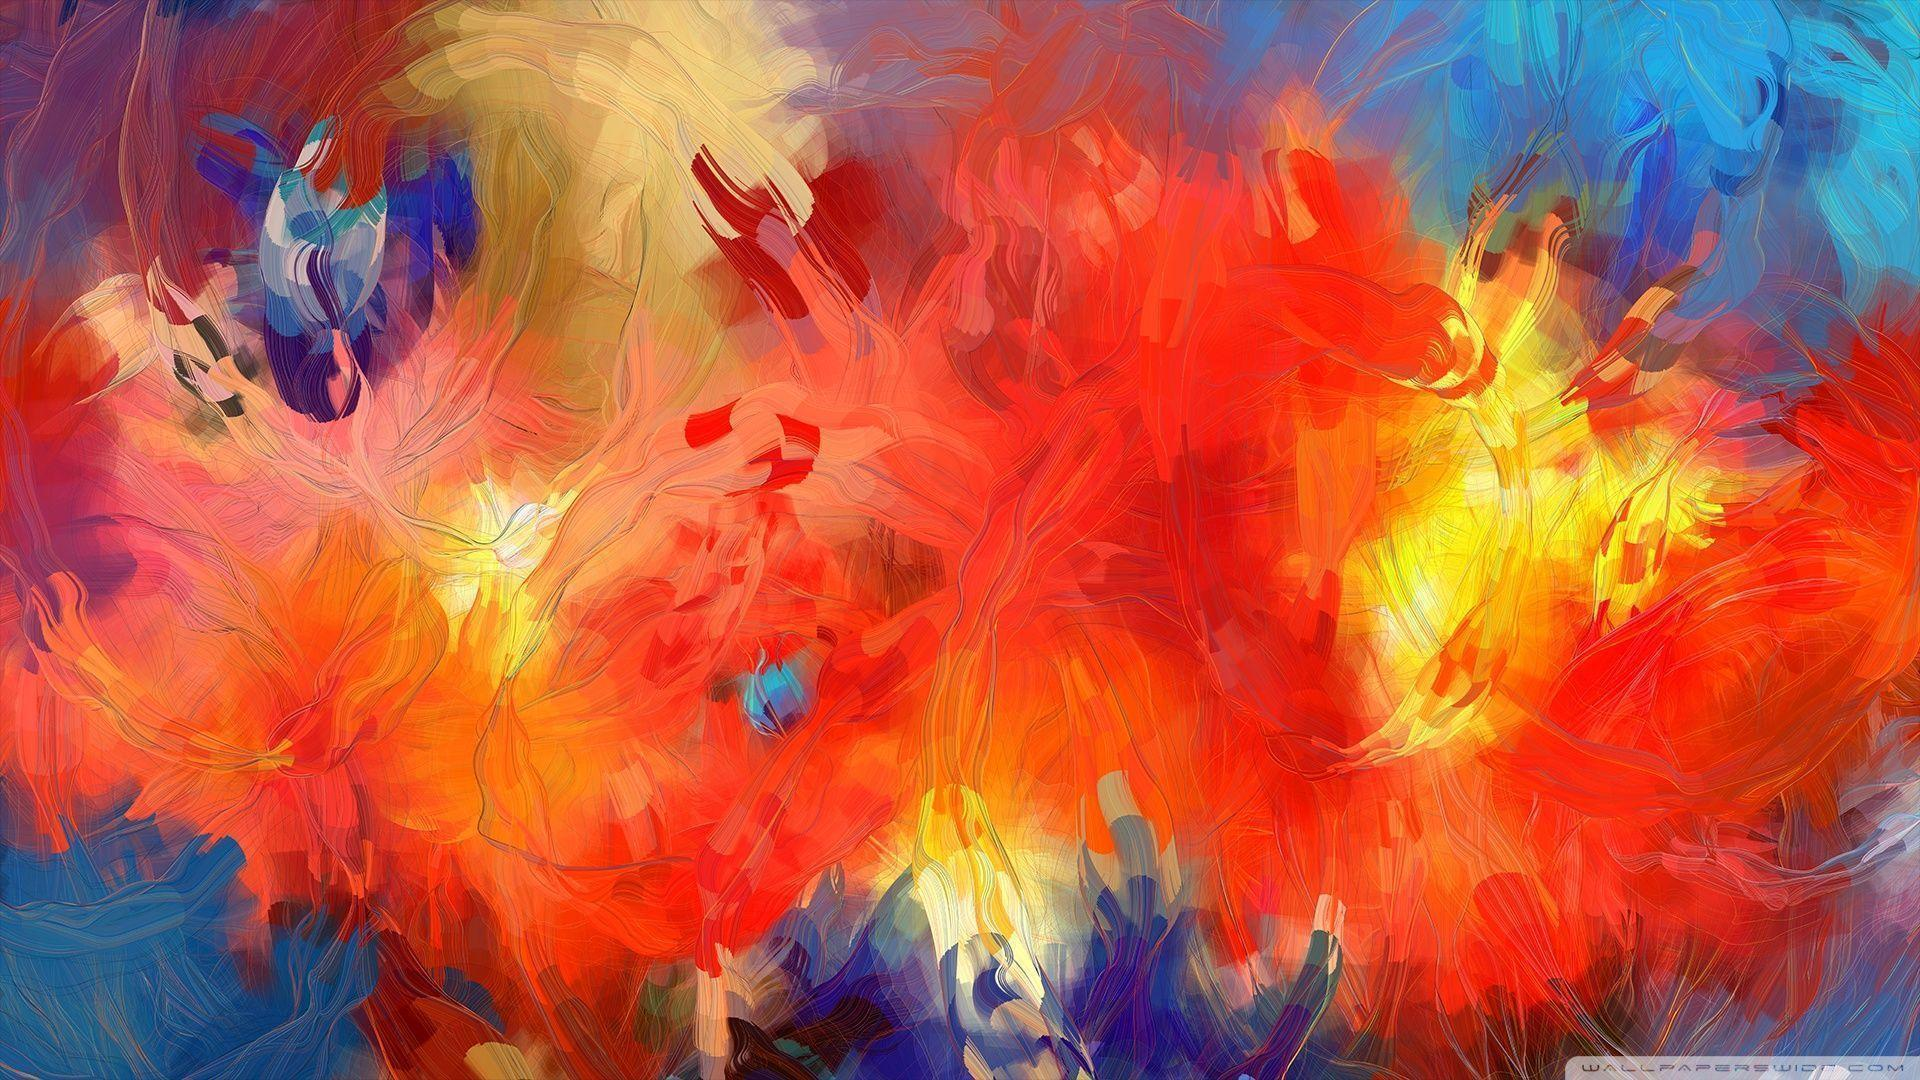 Abstract Art Wallpapers 1920x1080